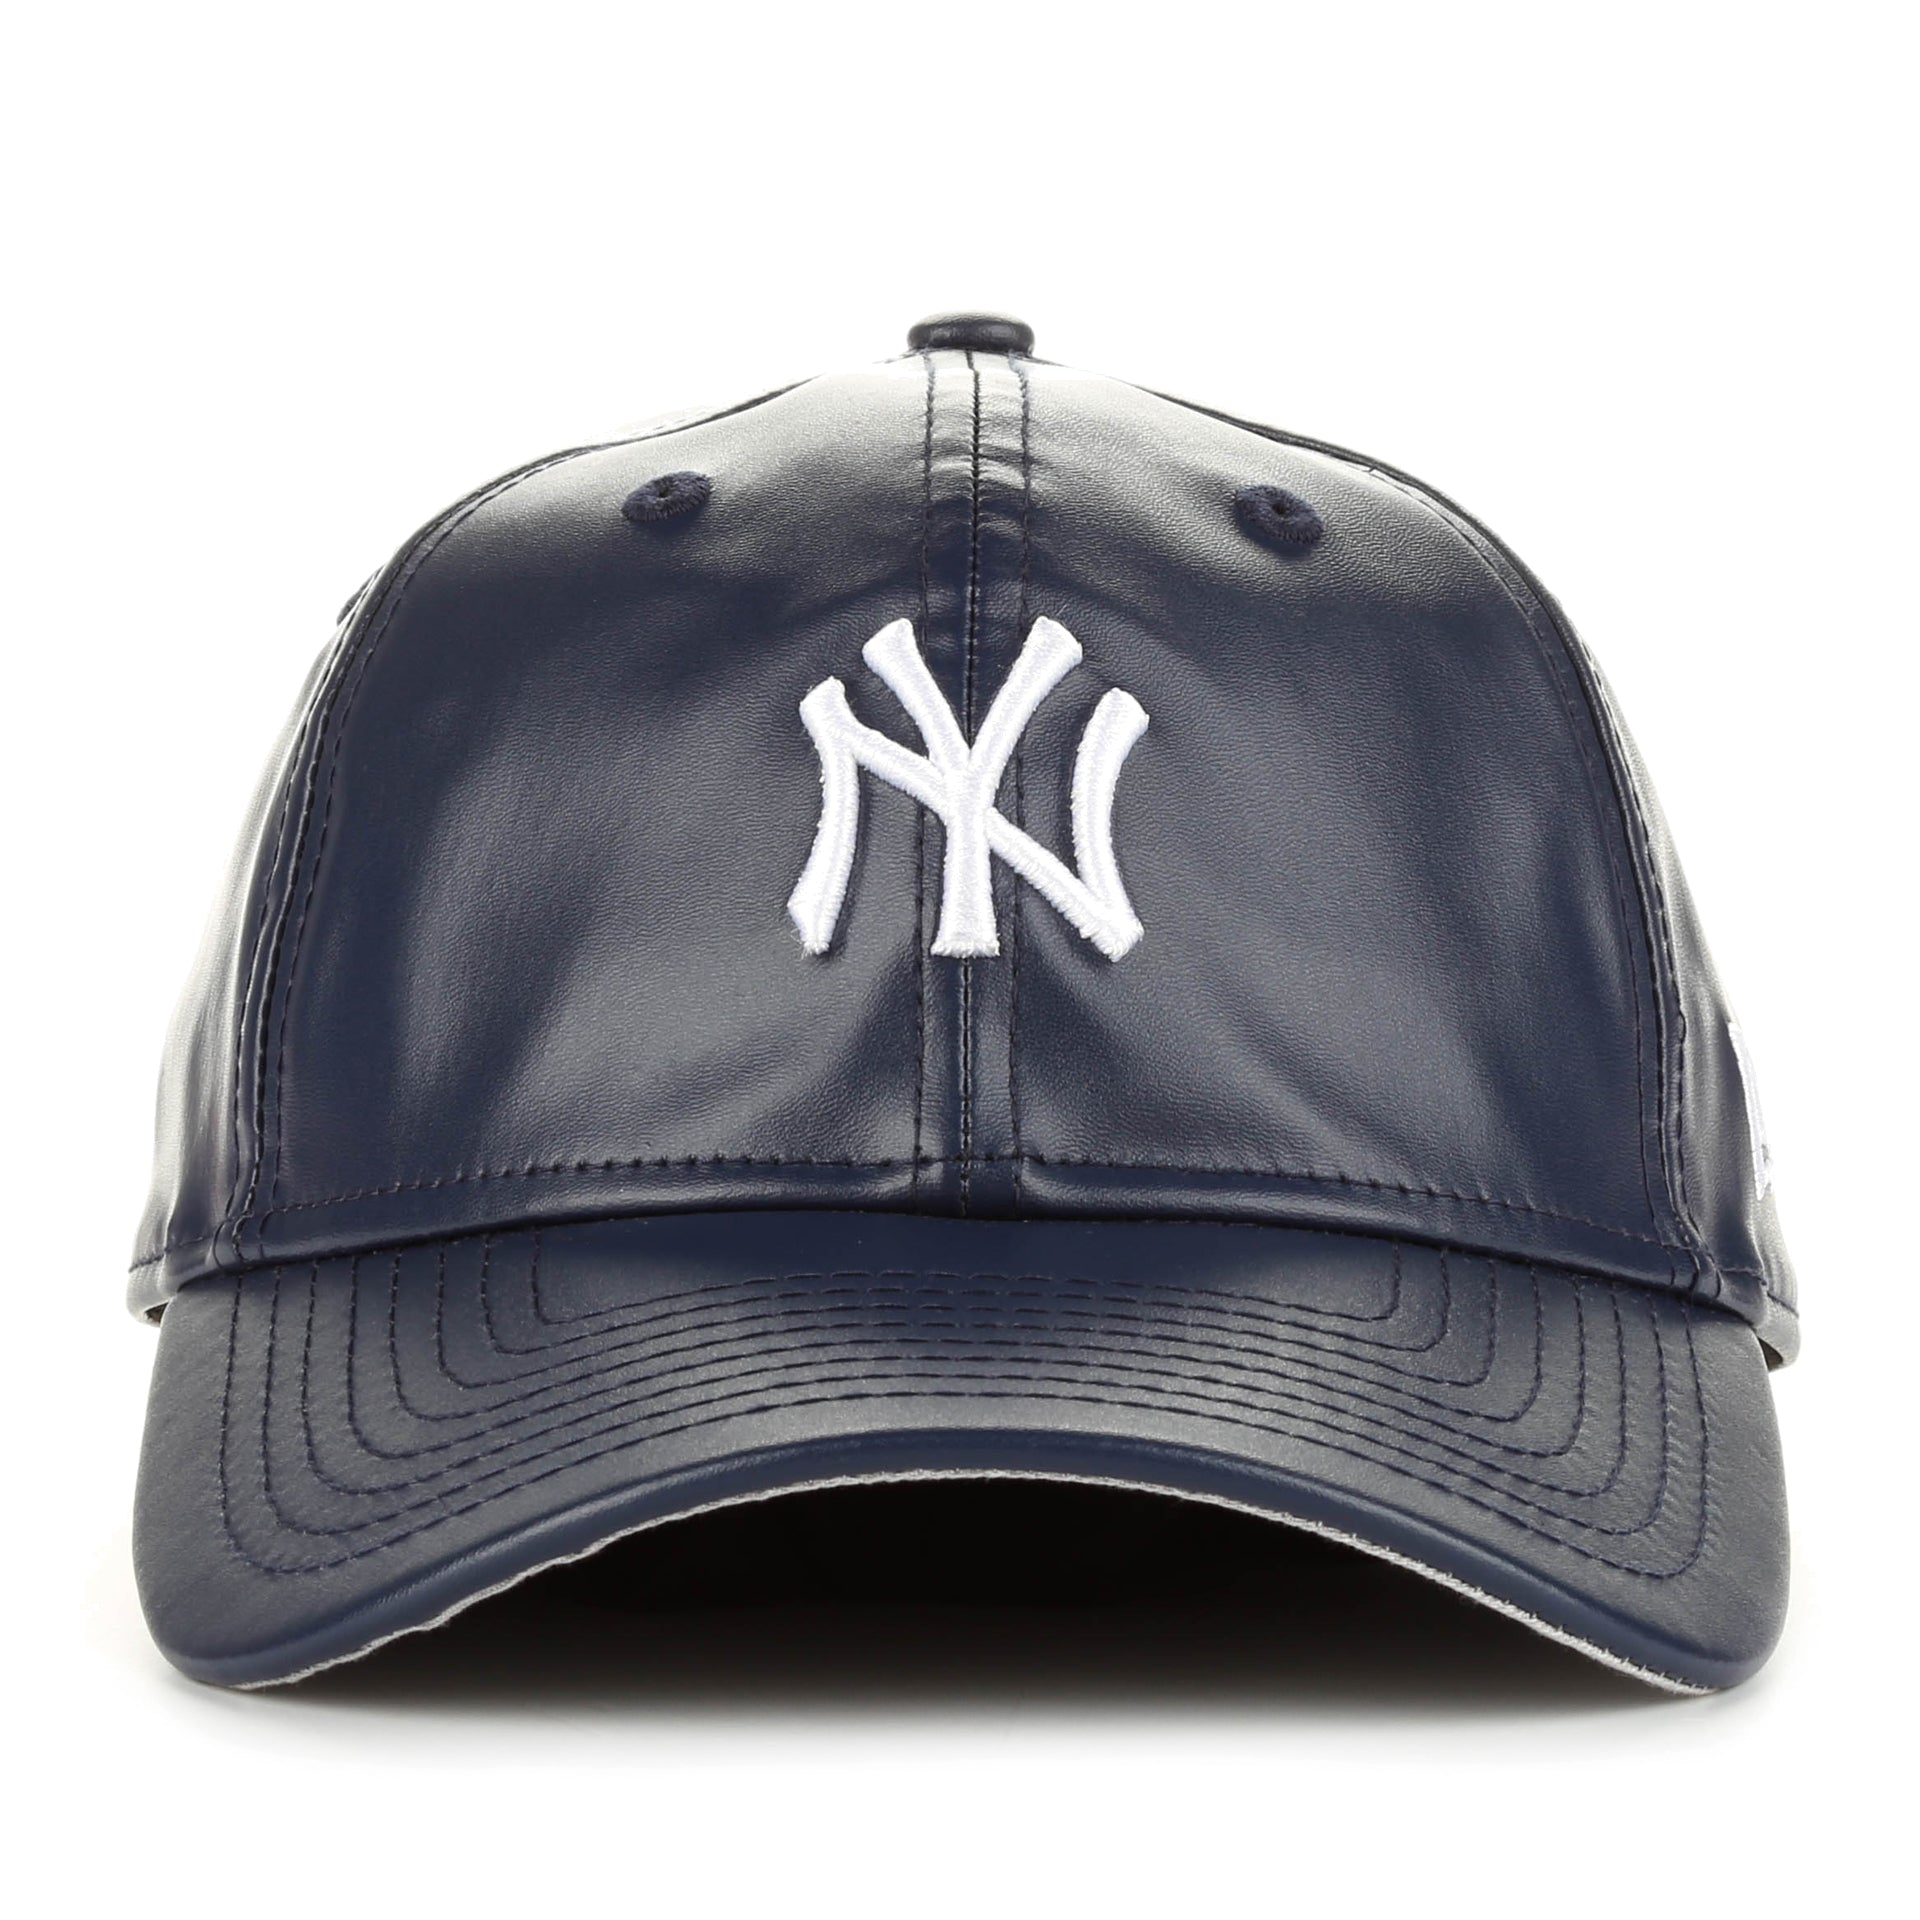 c6afa032a93 ... new zealand new era 9twenty pu leather squad cap new york yankees navy  a00e5 a0f62